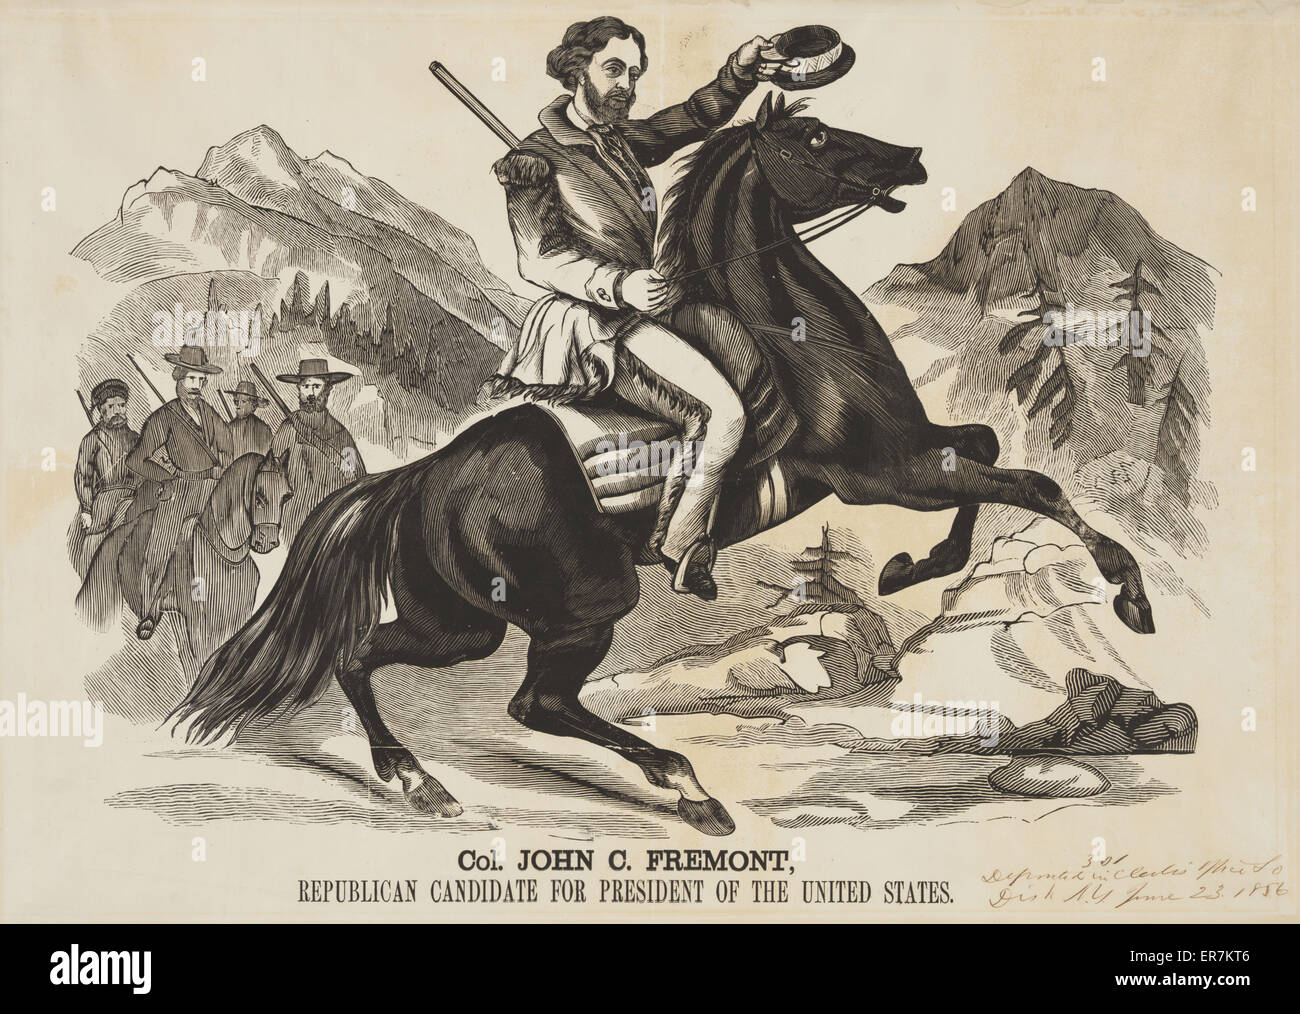 Col. John C. Fremont, Republican candidate for the President of the United States. Proof for a large woodcut banner - Stock Image